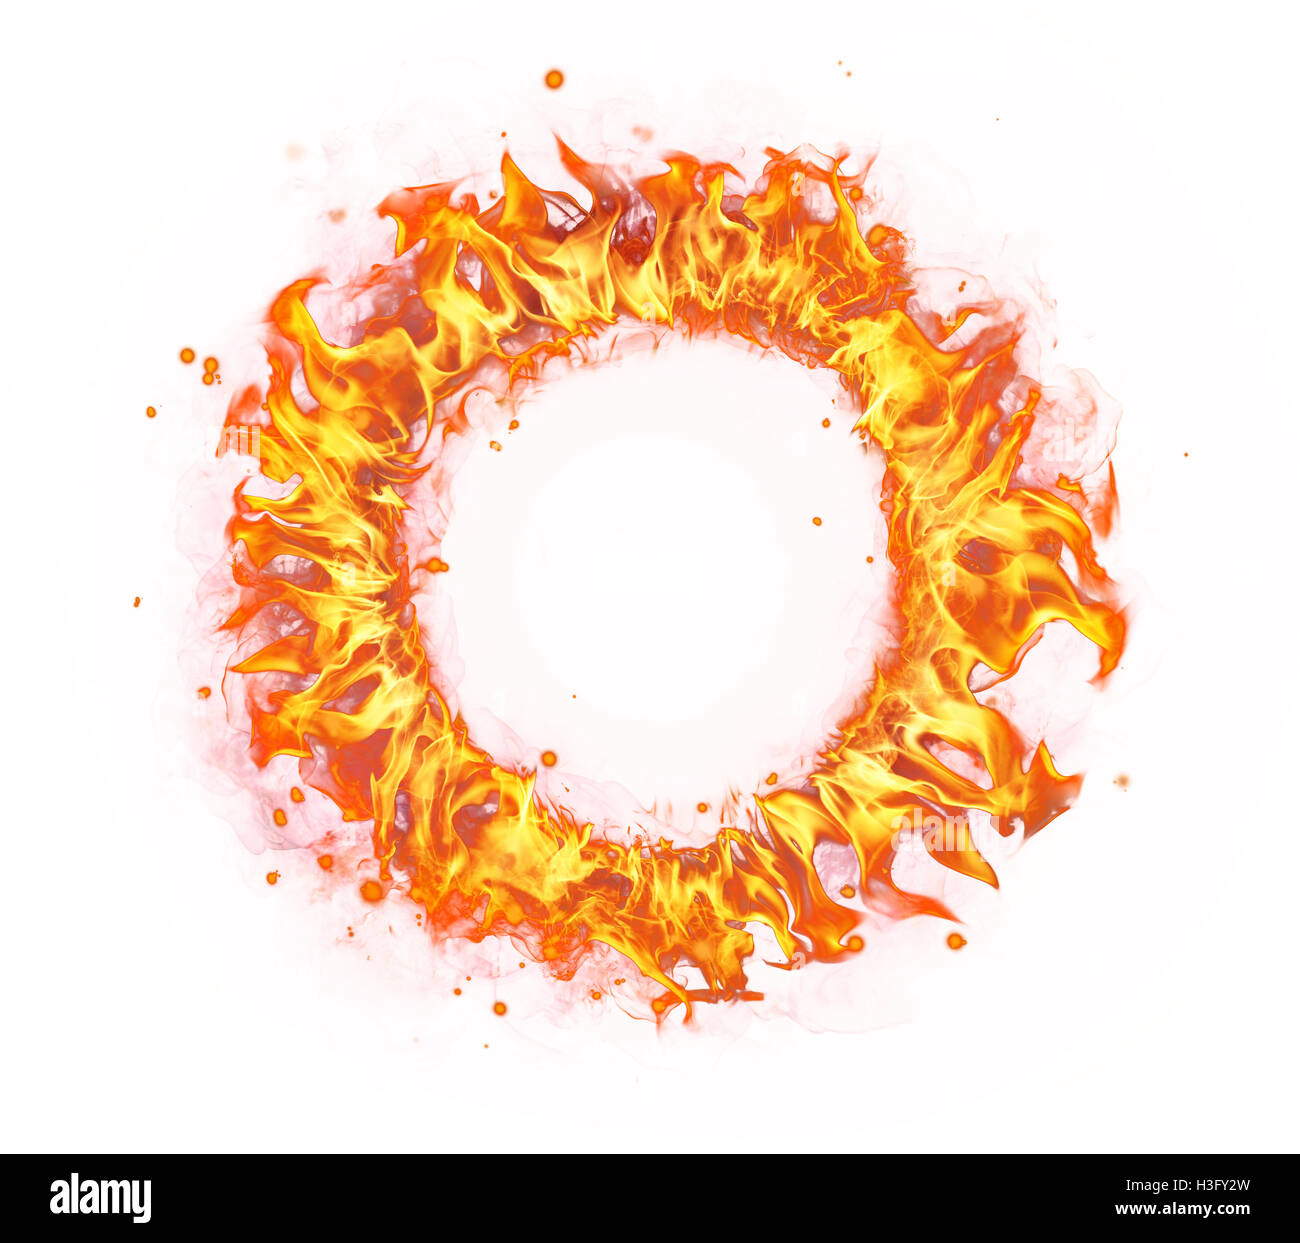 Abstract shape of fire circle isolated on white background - Stock Image